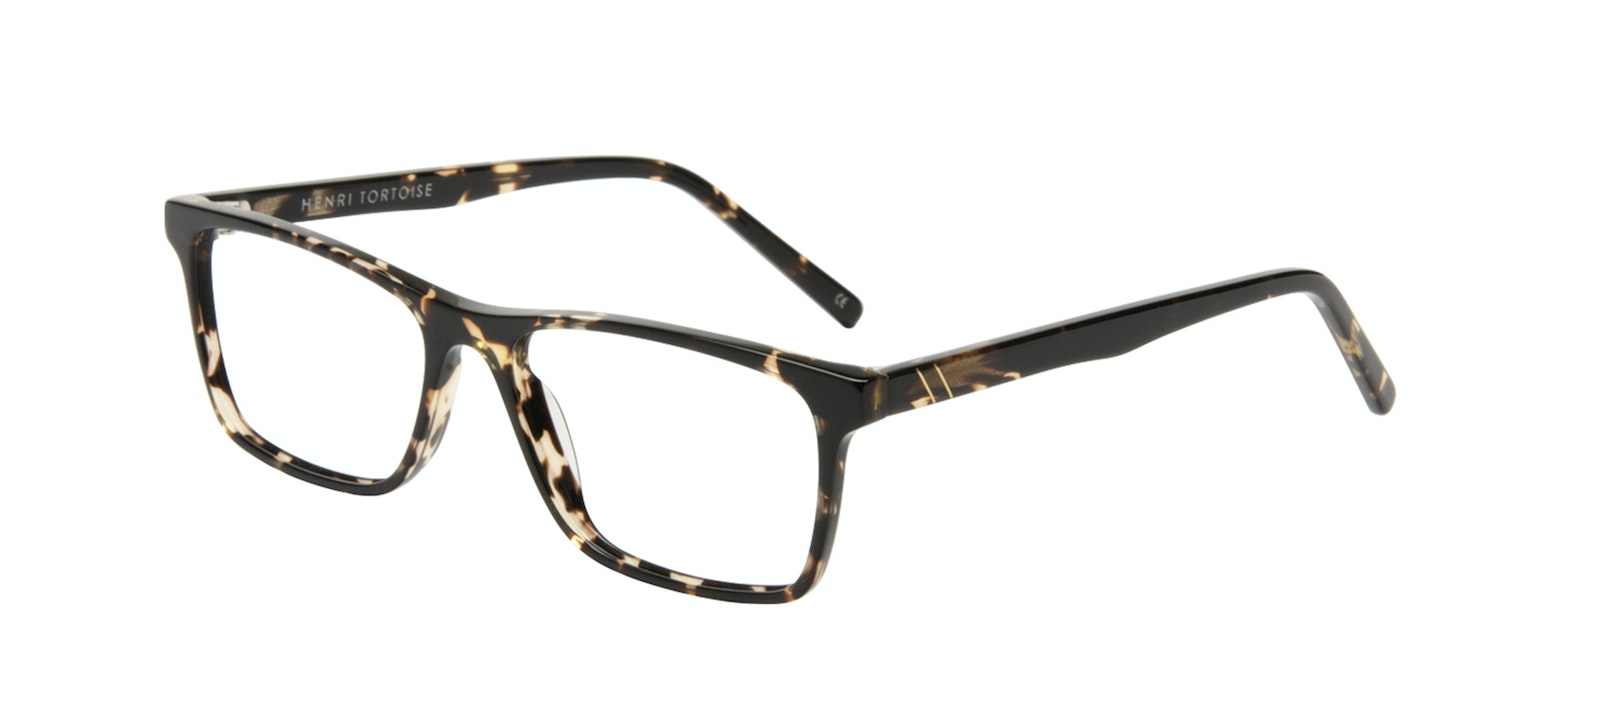 Affordable Fashion Glasses Rectangle Eyeglasses Men Henri Tortoise Tilt